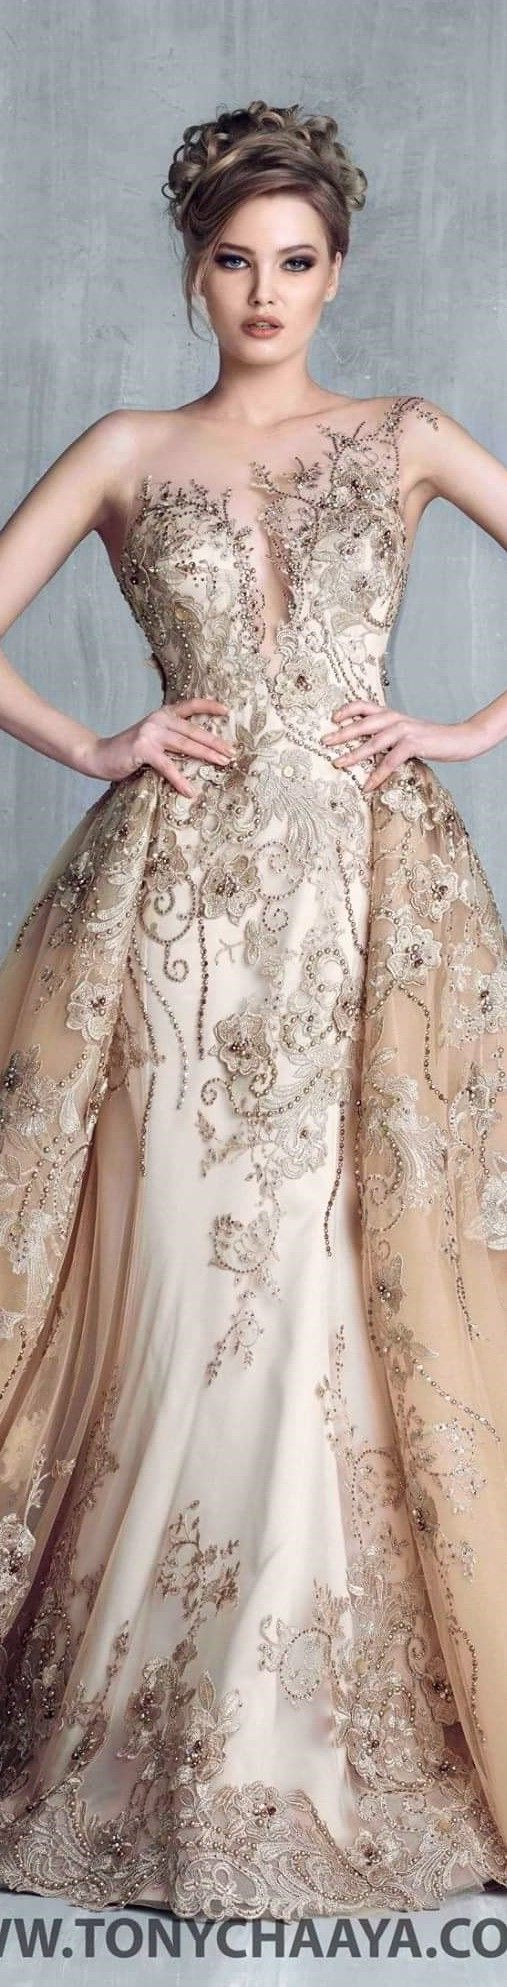 best fashion images on pinterest formal evening dresses